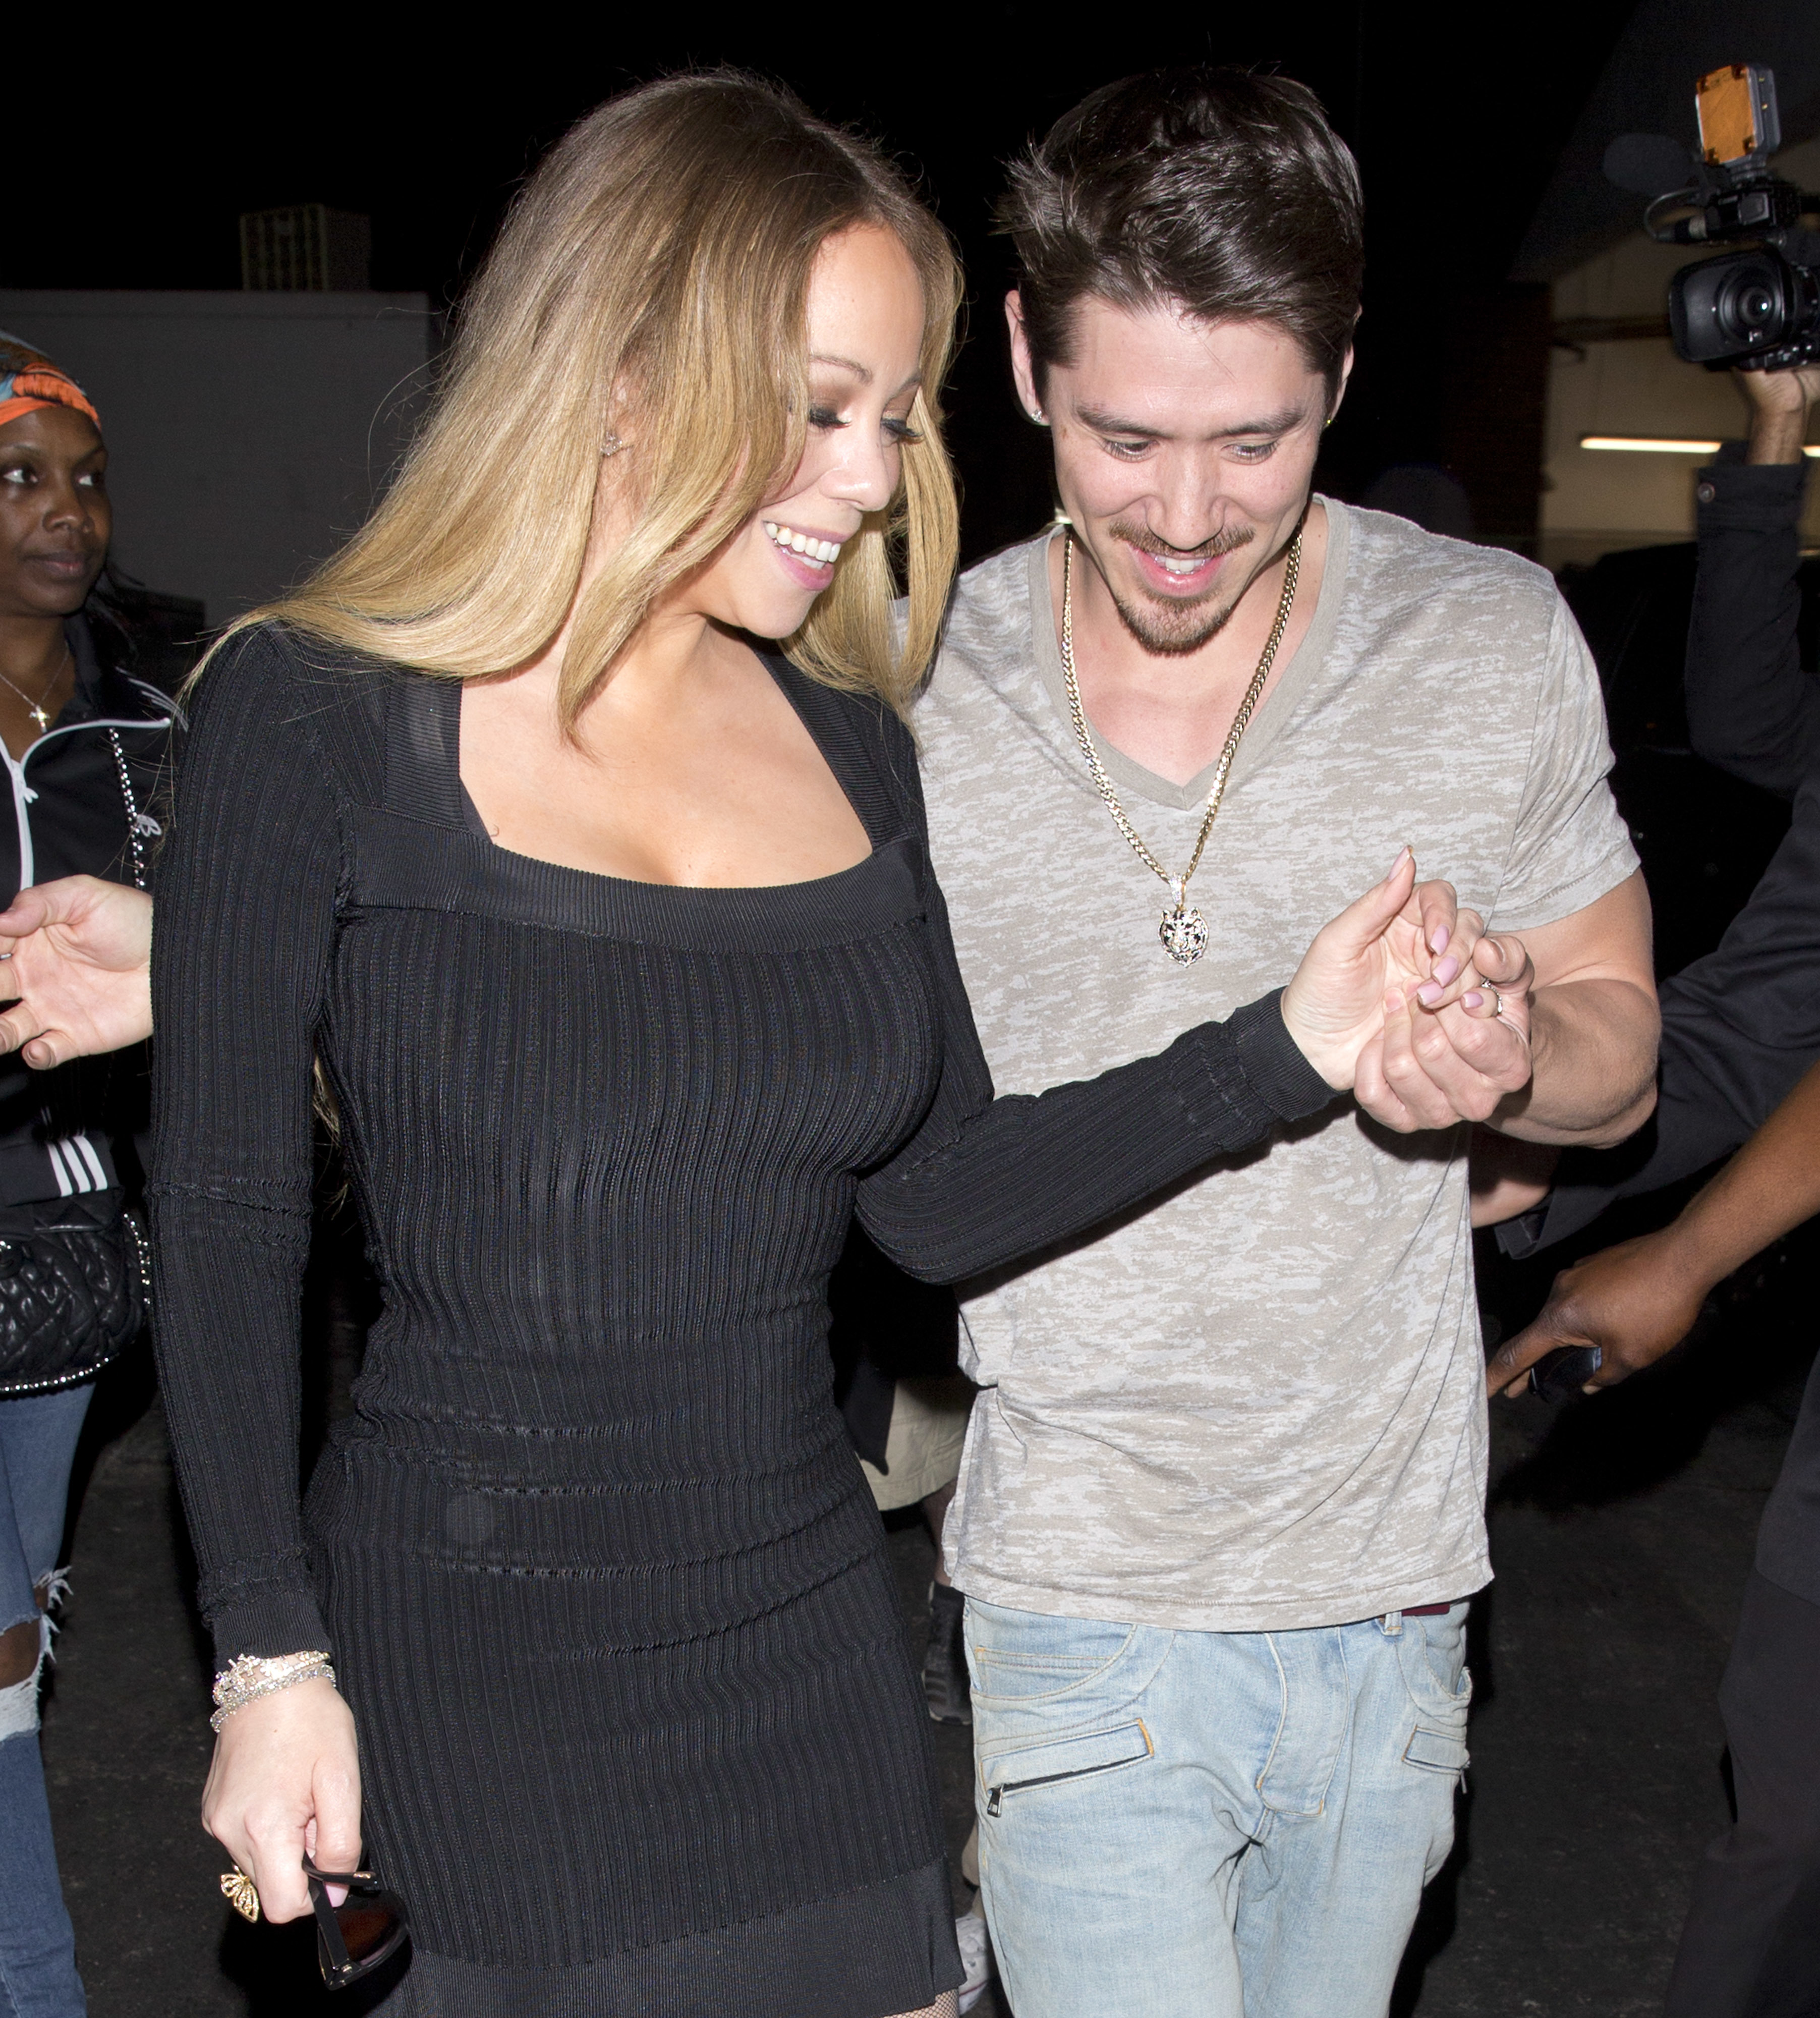 Mariah Carey and beau Bryan Tanaka are seen holding hands on date night at Mastro's Steakhouse in Beverly Hills, Calif., on April 24, 2018.